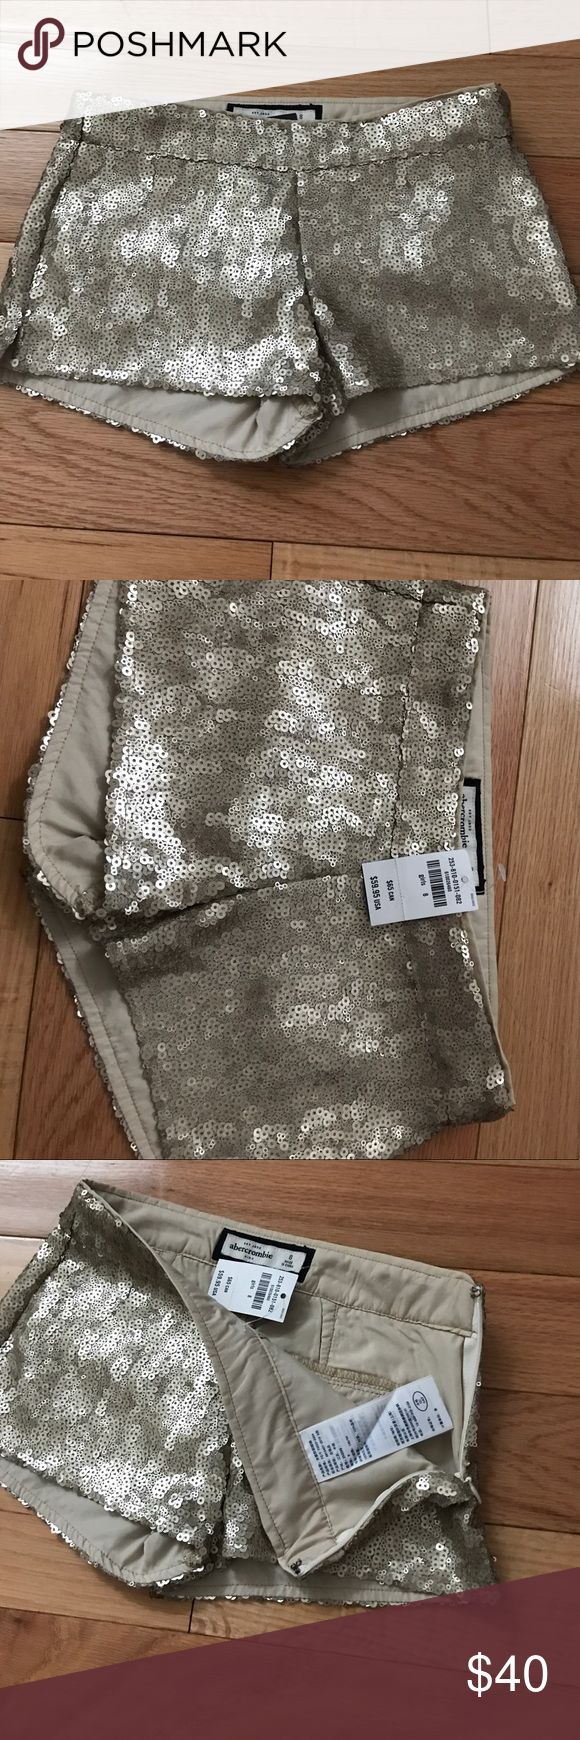 Abercrombie & Fitch gold sequin shorts Brand new gold sequin shorts with side zip and 2 back pockets. Girls Sz 8 Abercombie Kids Bottoms Shorts